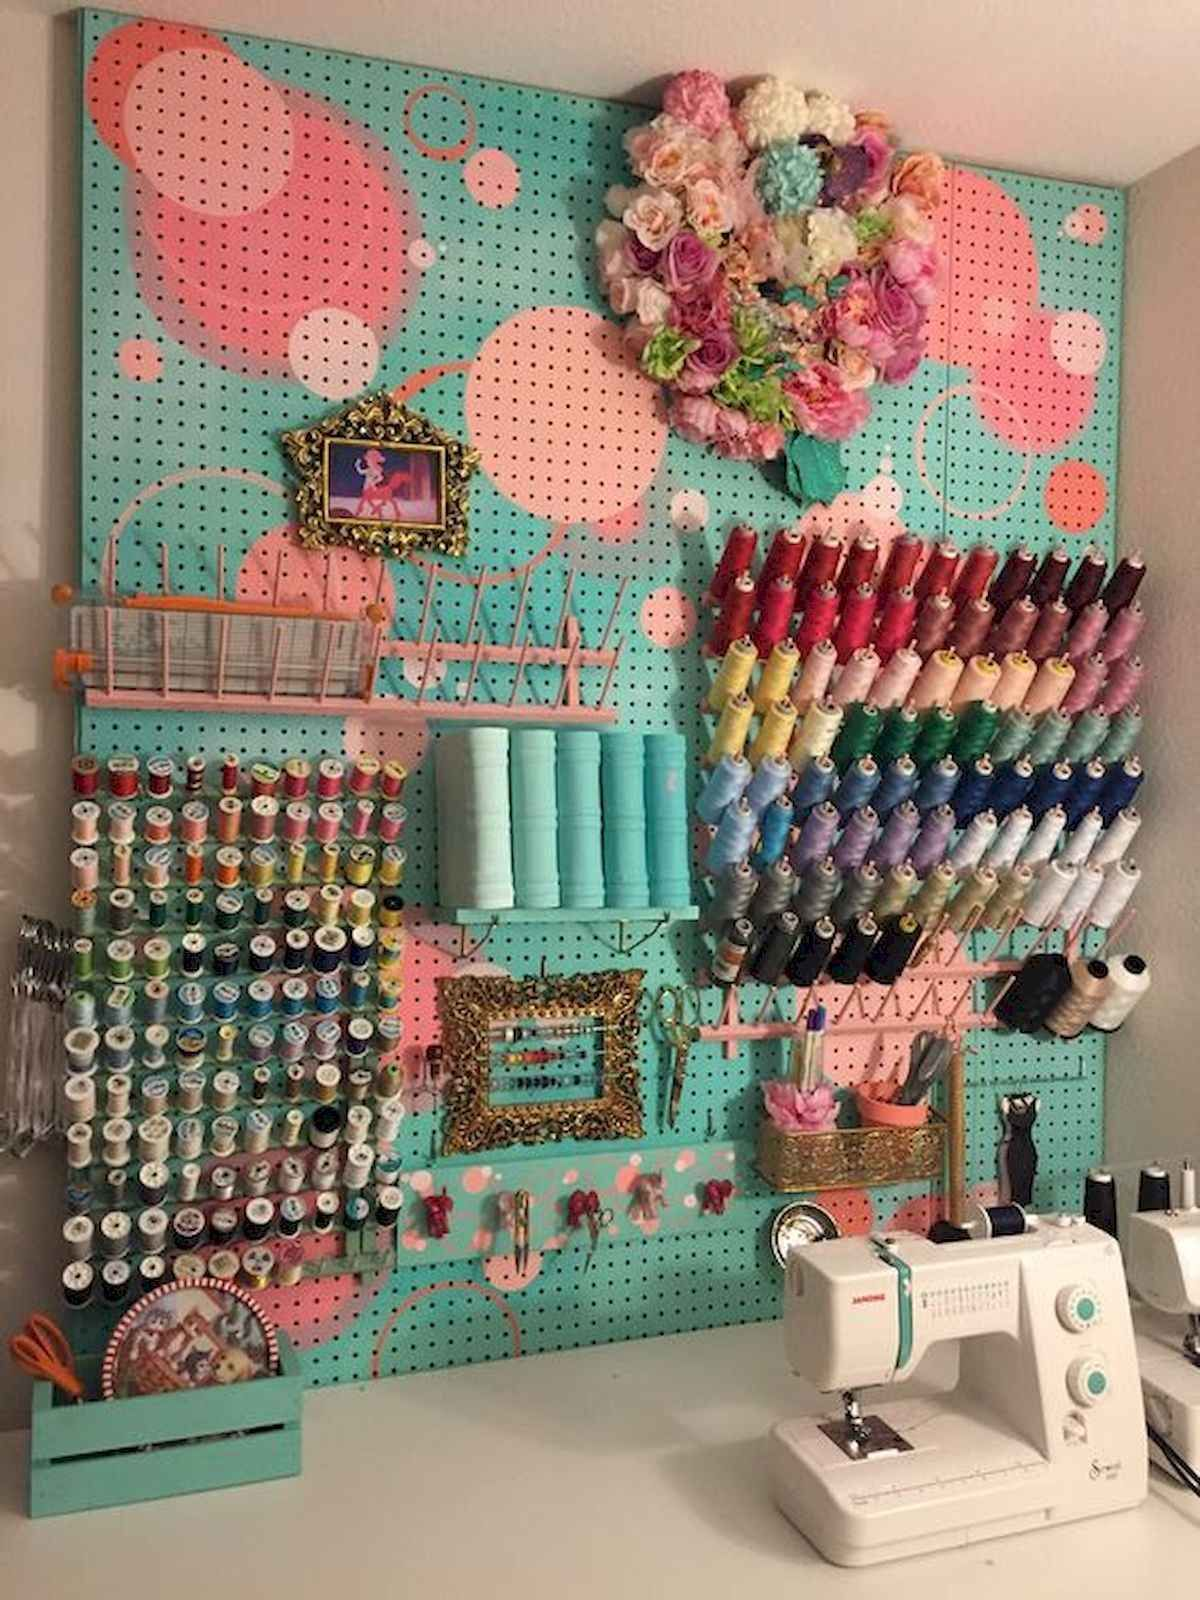 30 Best Art Room And Craft Room Organization Decor (28 images